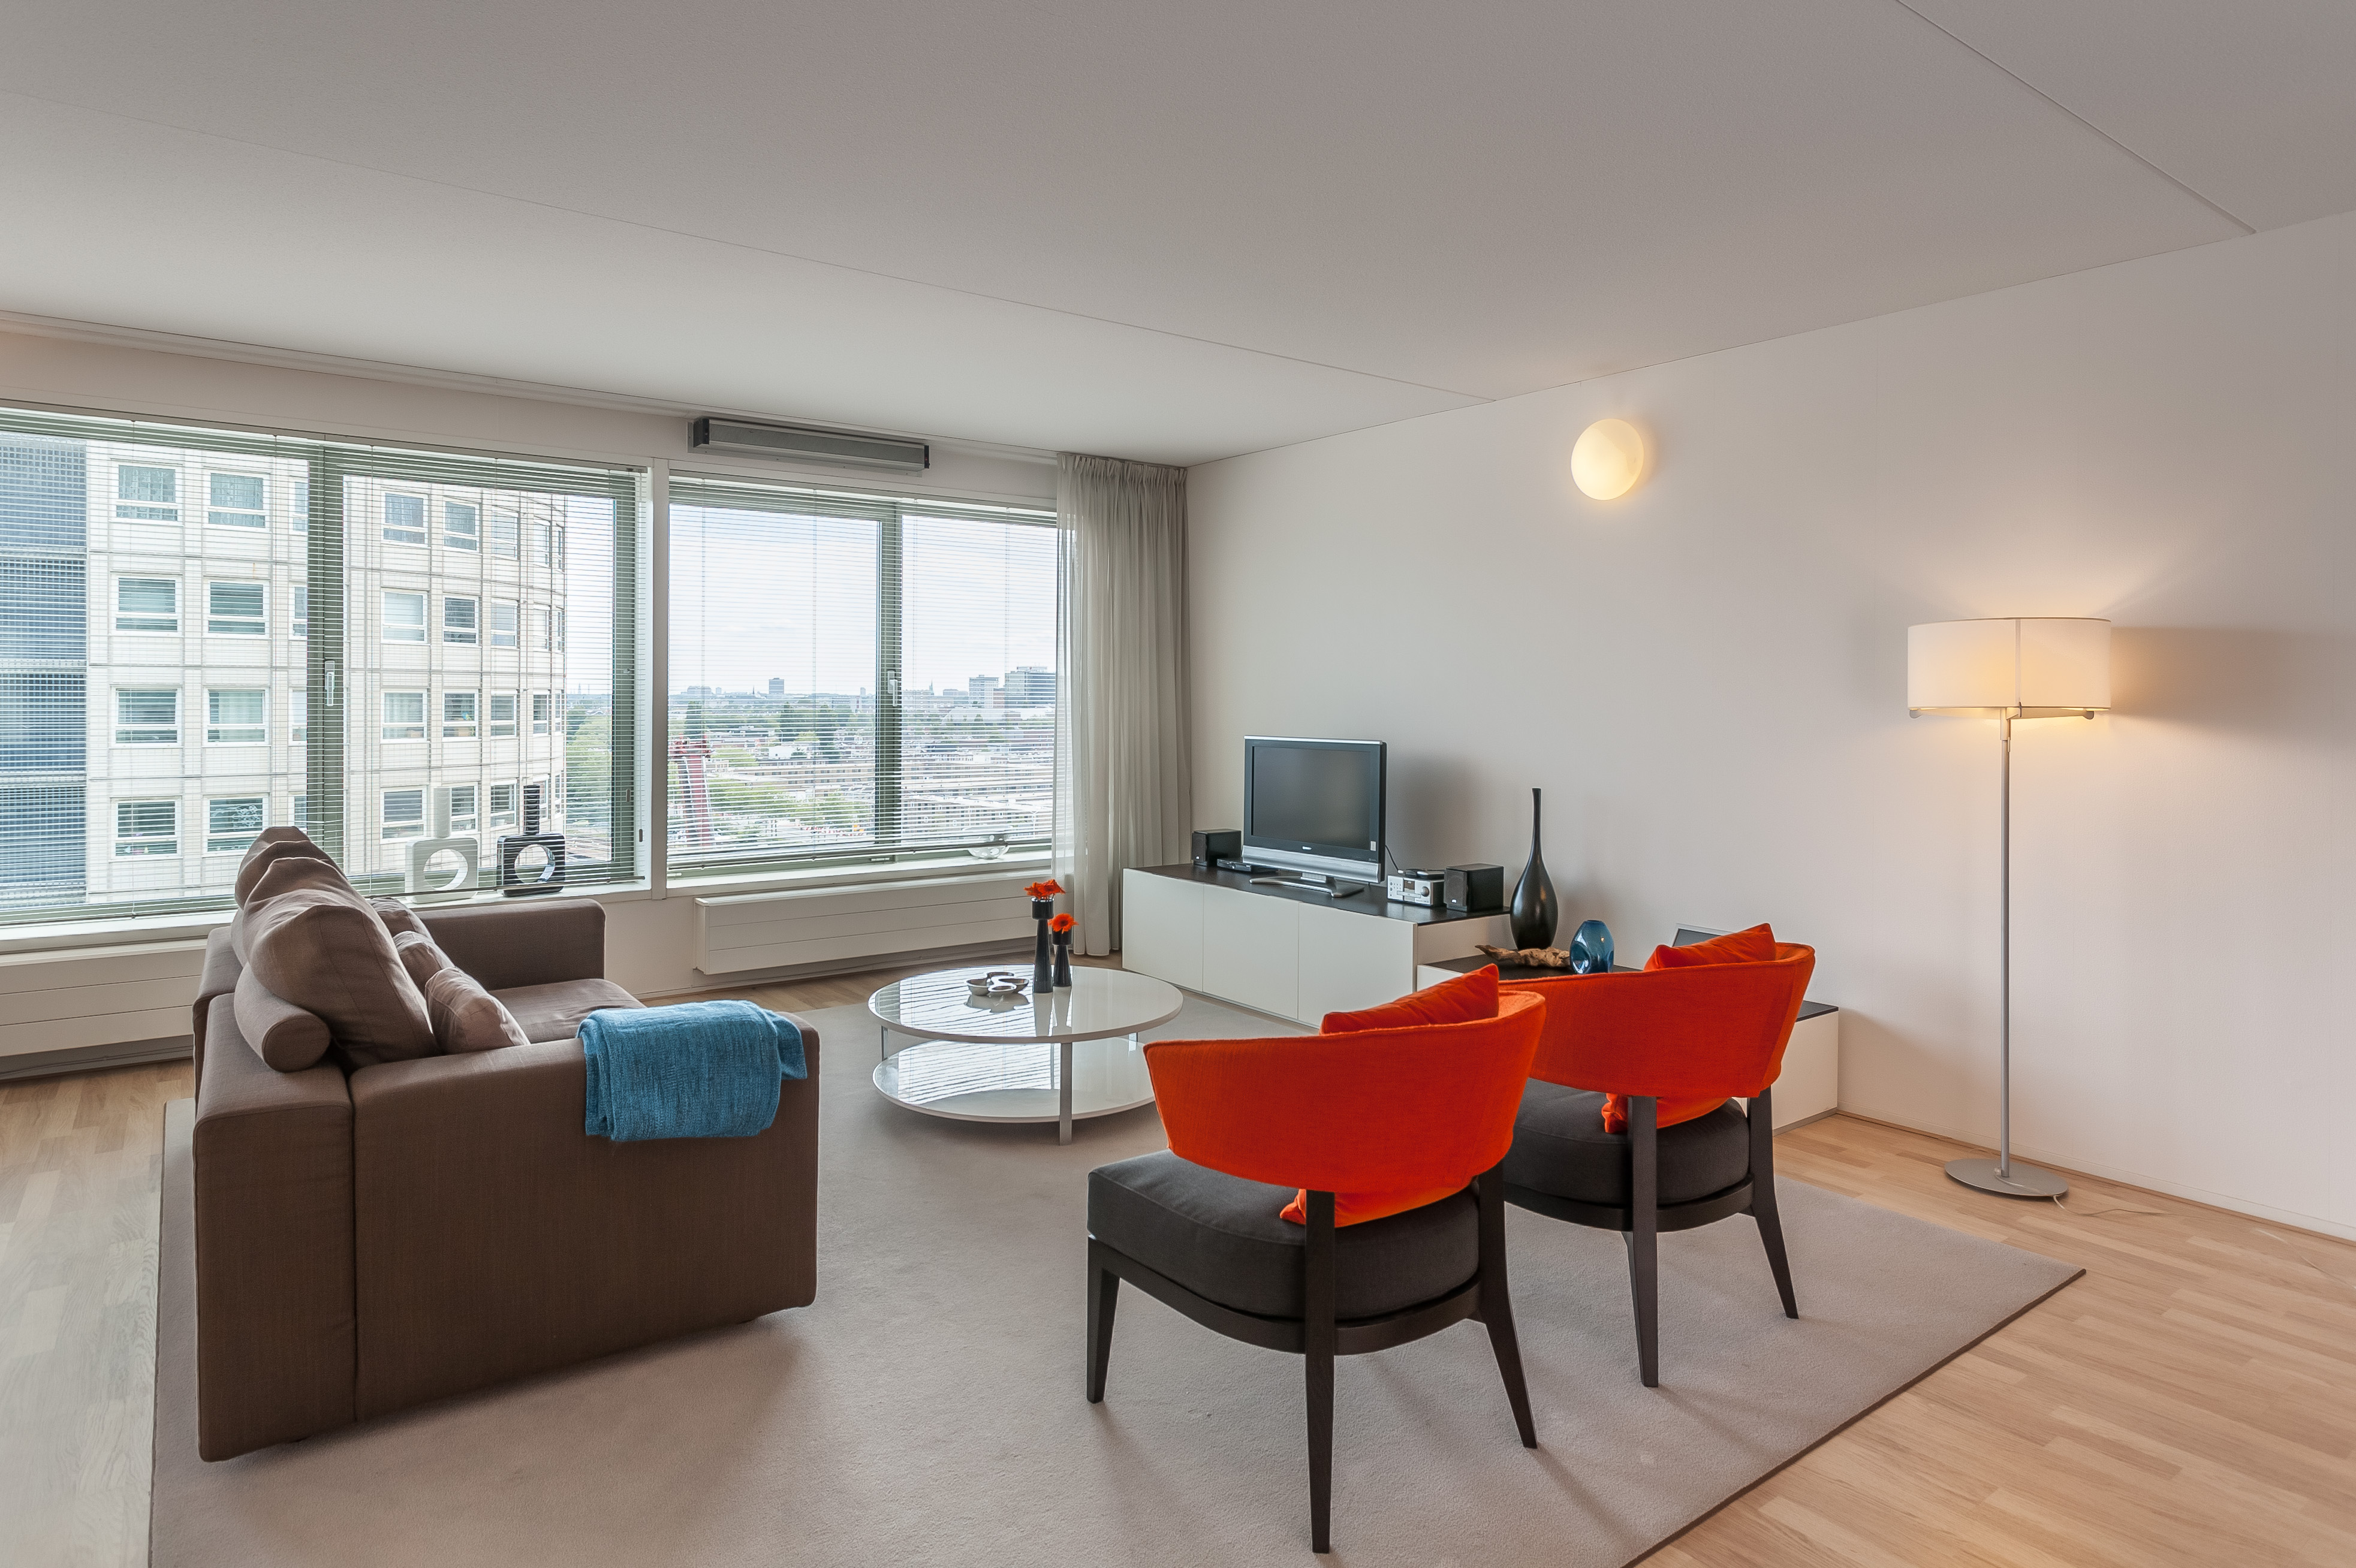 apartments for rent the-hague la fenetre living room